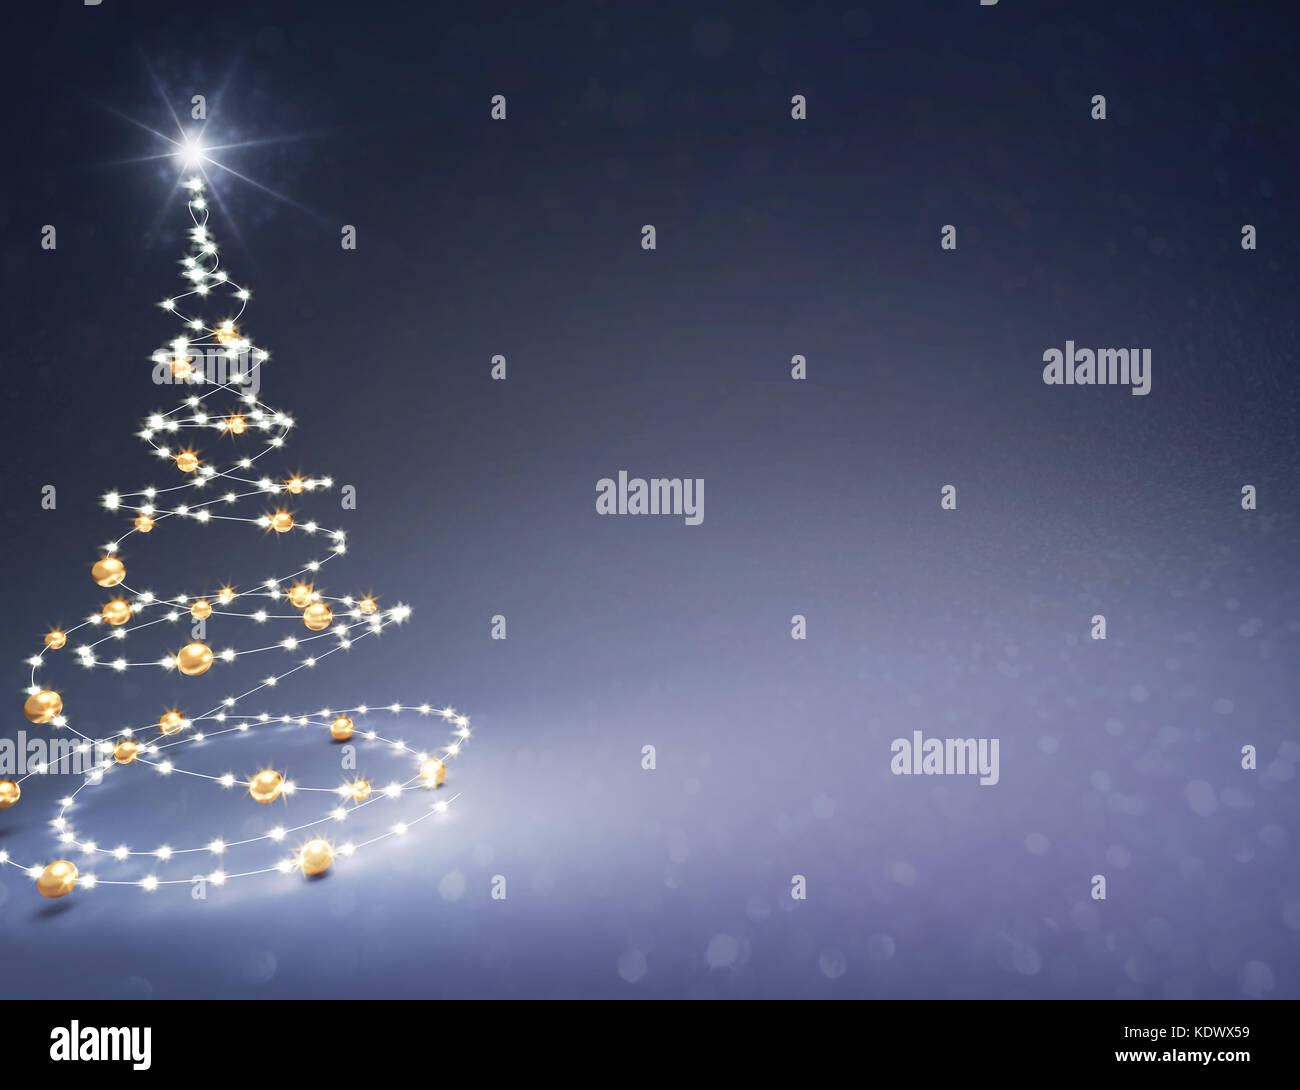 Christmas tree illustrated with light strings and gold Christmas balls on a glittering black background - 3D illustration - Stock Image